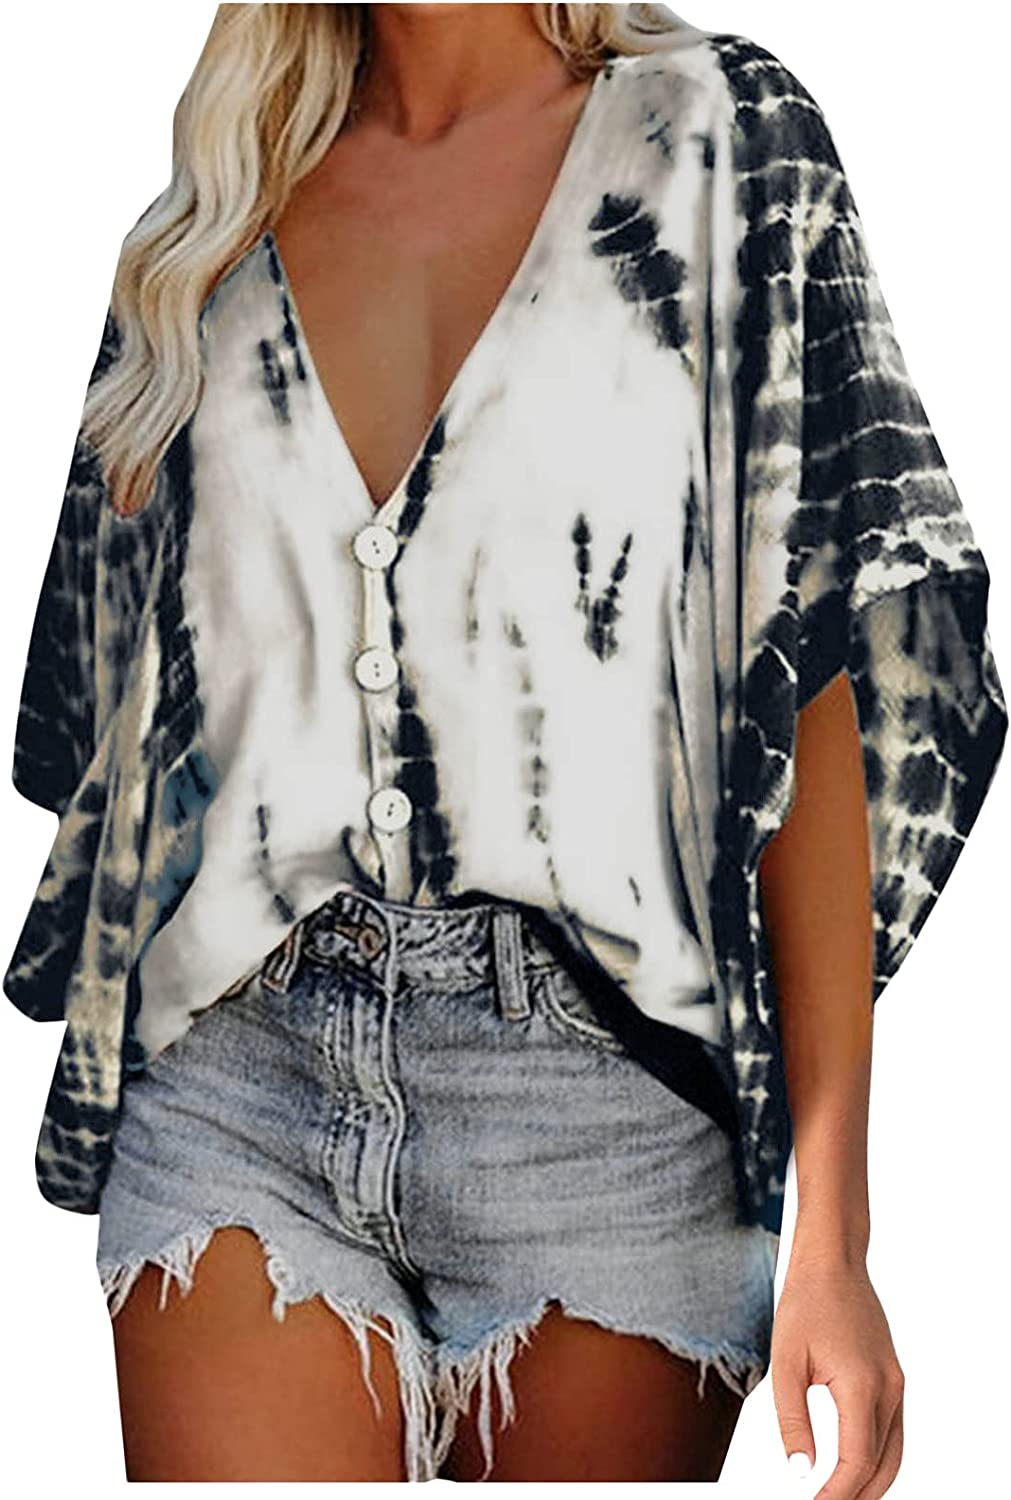 Lovor Women's Summer Print Tops Short Sleeve Comfortable Button Down V Neck T-Shirts Bright Colorful Casual Tees Blouses